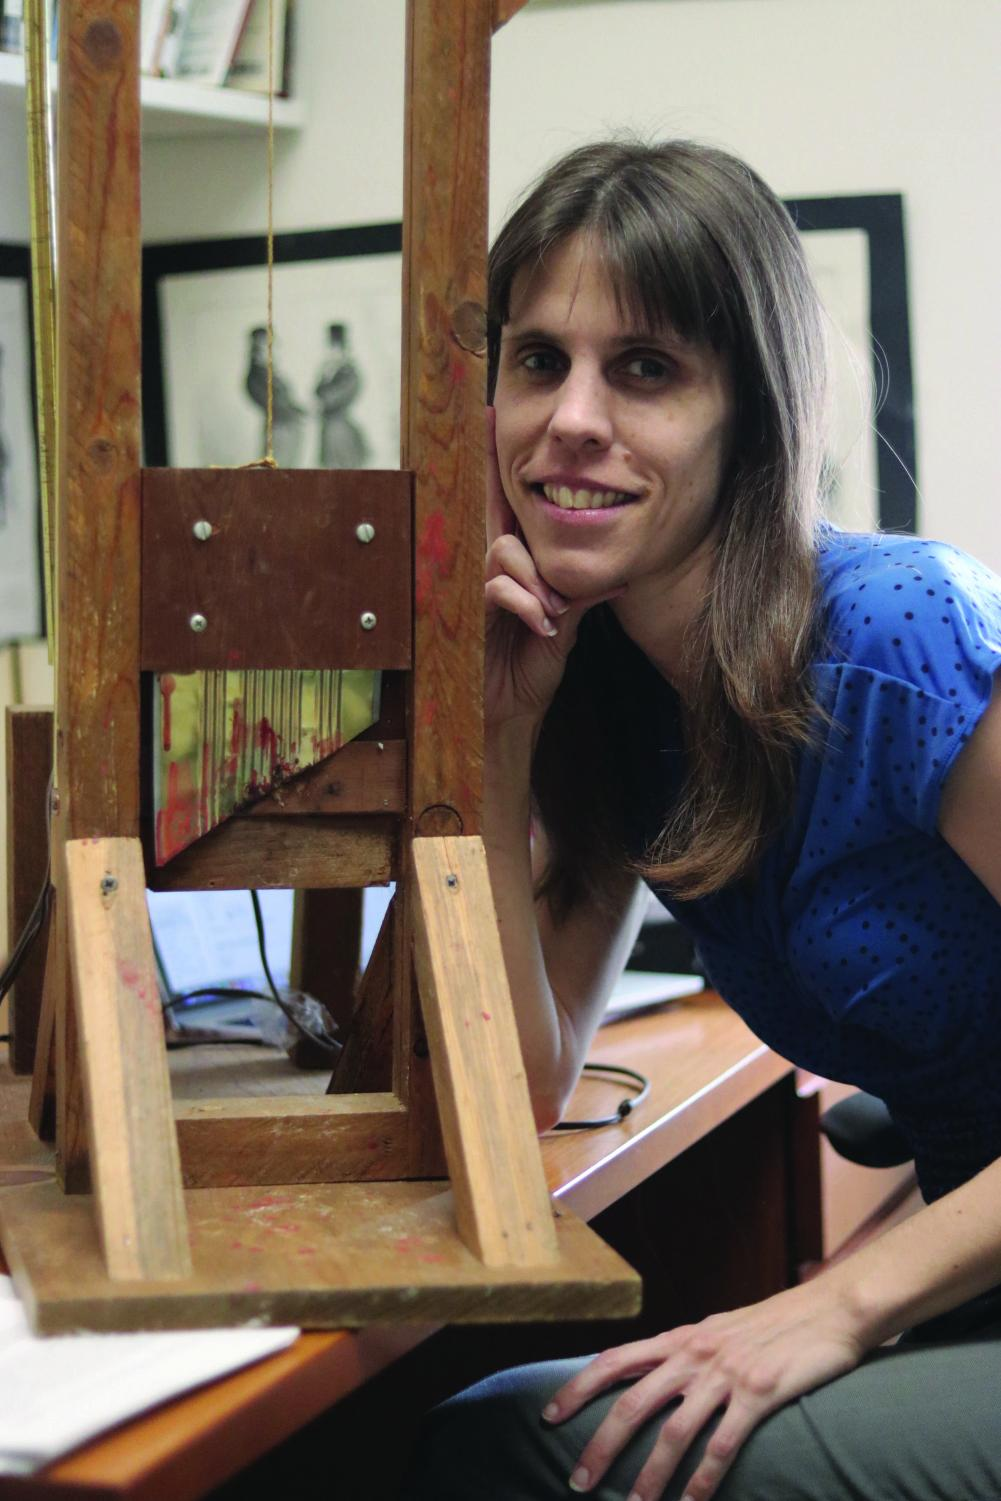 Dr. Erika Vause poses with her mini guillotine and speaks with the Torch about her history selections.